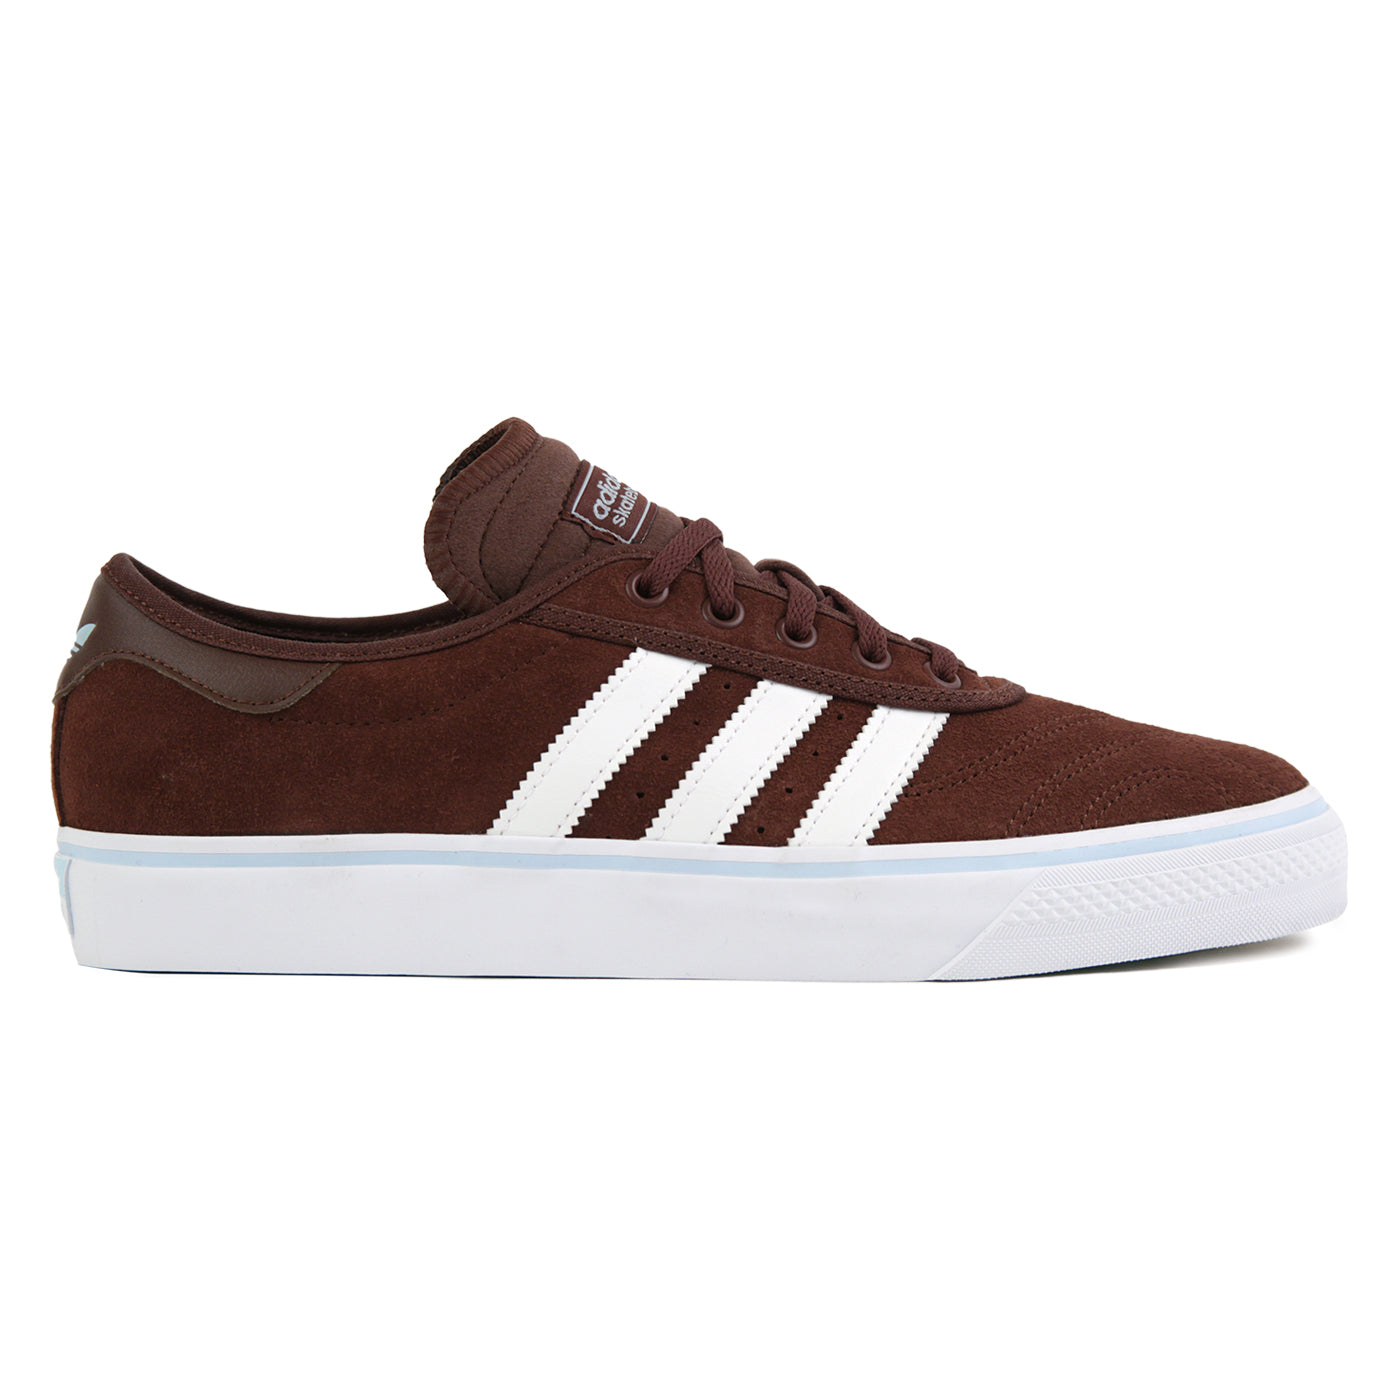 new styles ff050 0c3ee Adidas Skateboarding Adi Ease Premiere ADV Shoes - Auburn  White  Ice Blue